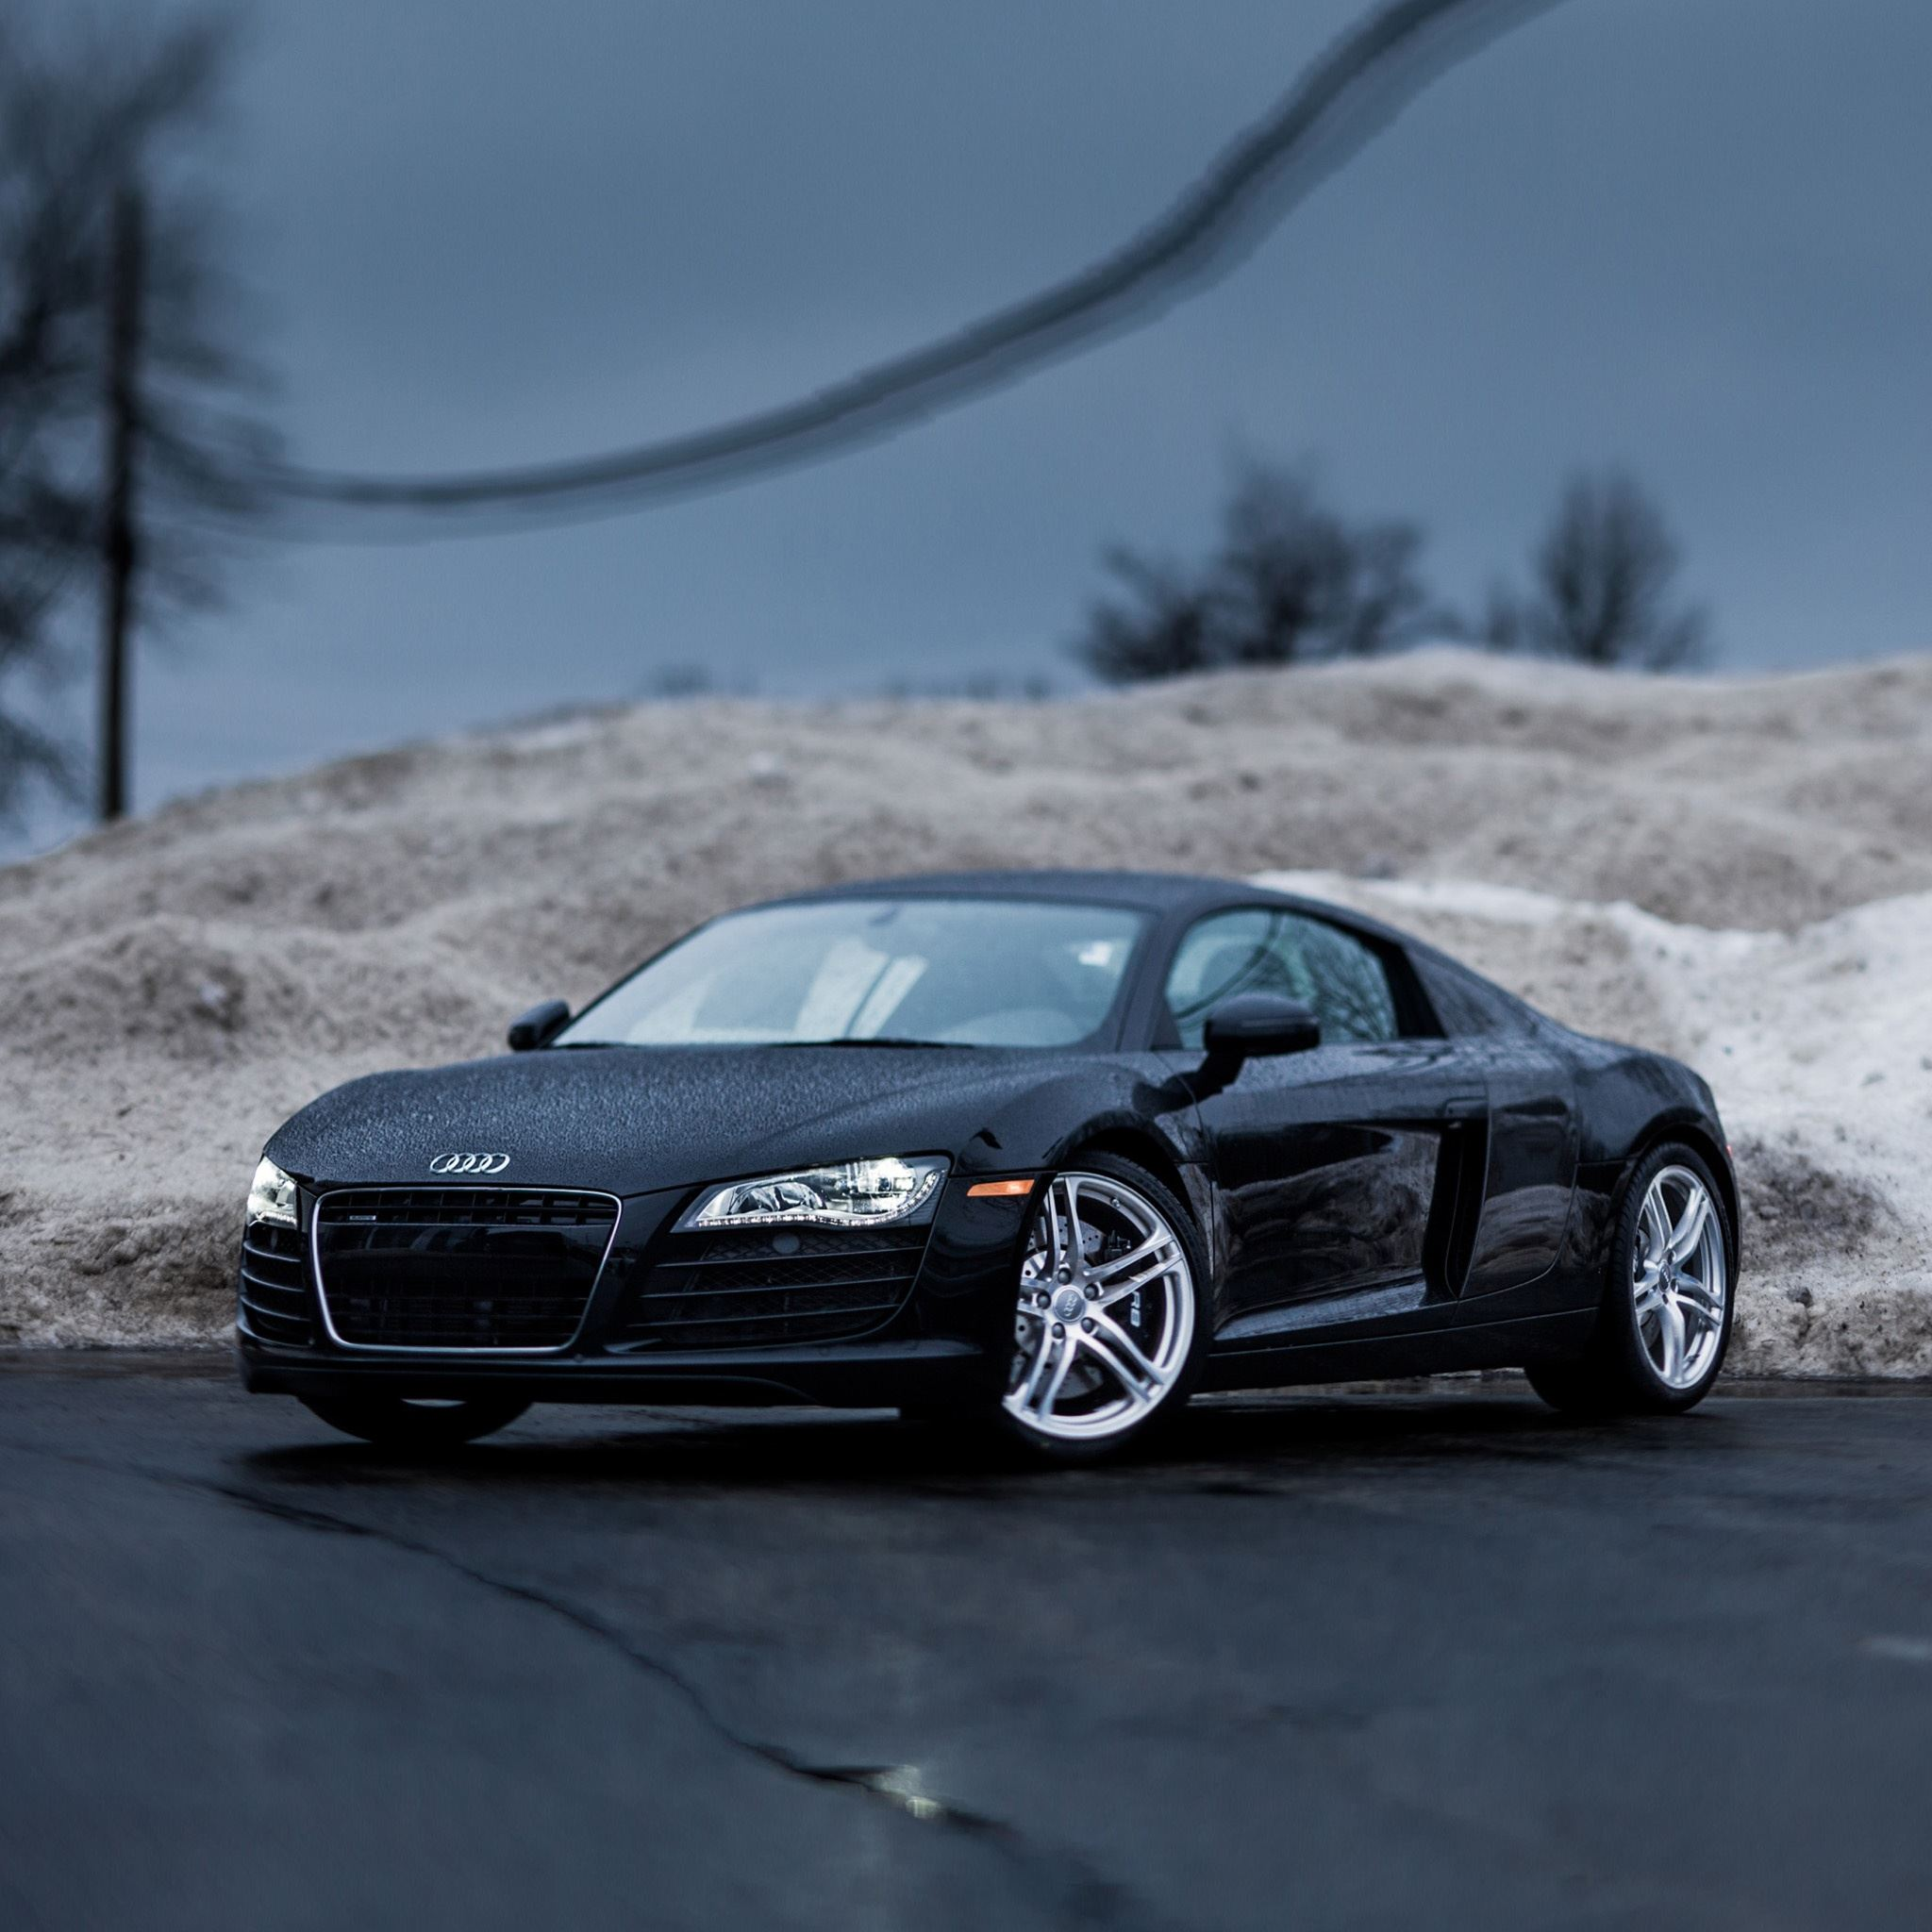 Audi R8 IPad Air Wallpapers Free Download